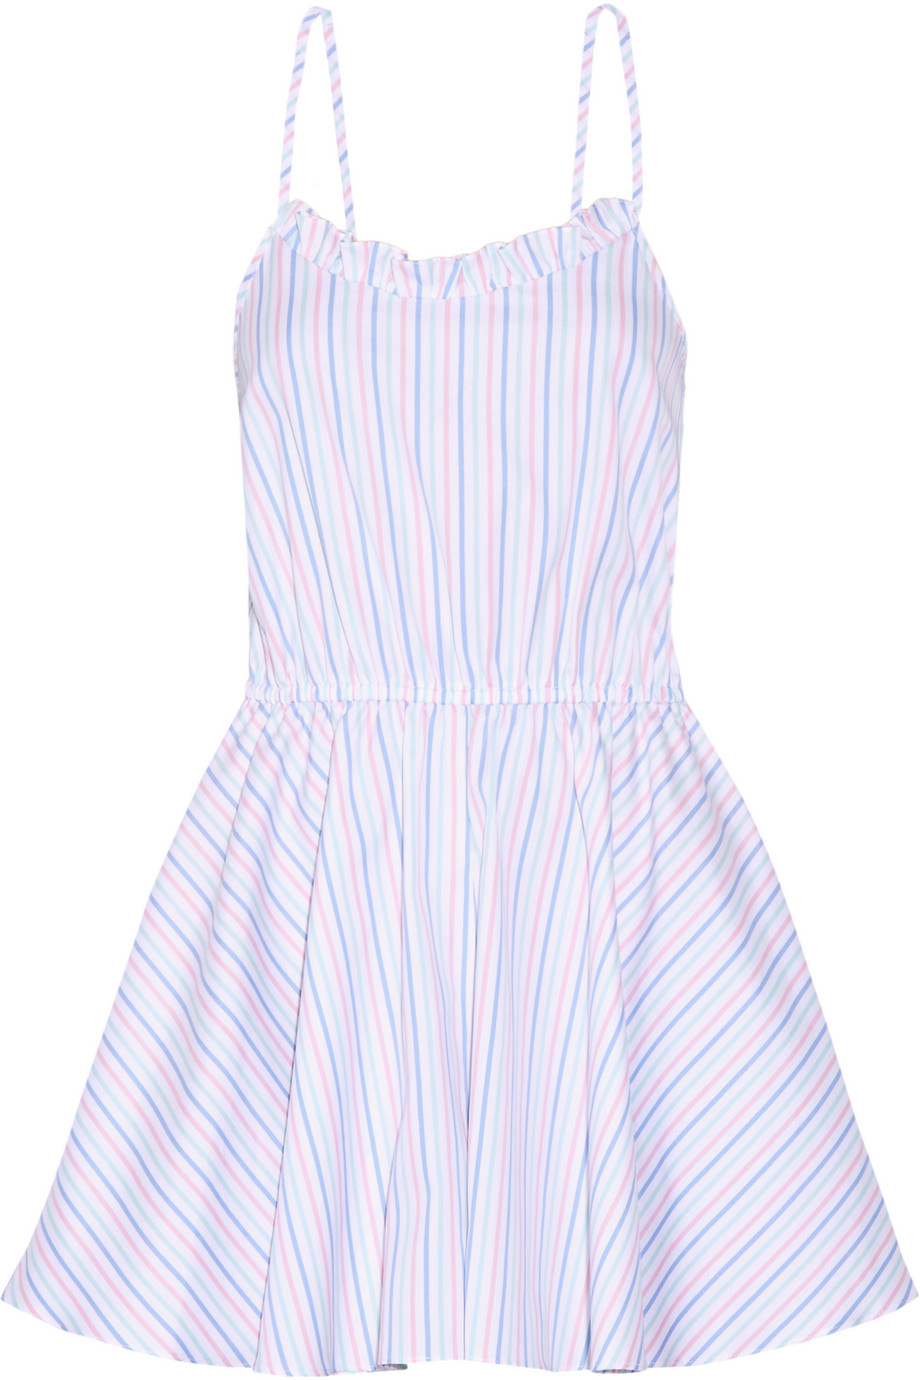 Demi Striped Cotton Oxford Playsuit, White/Blue, Women's, Size: M